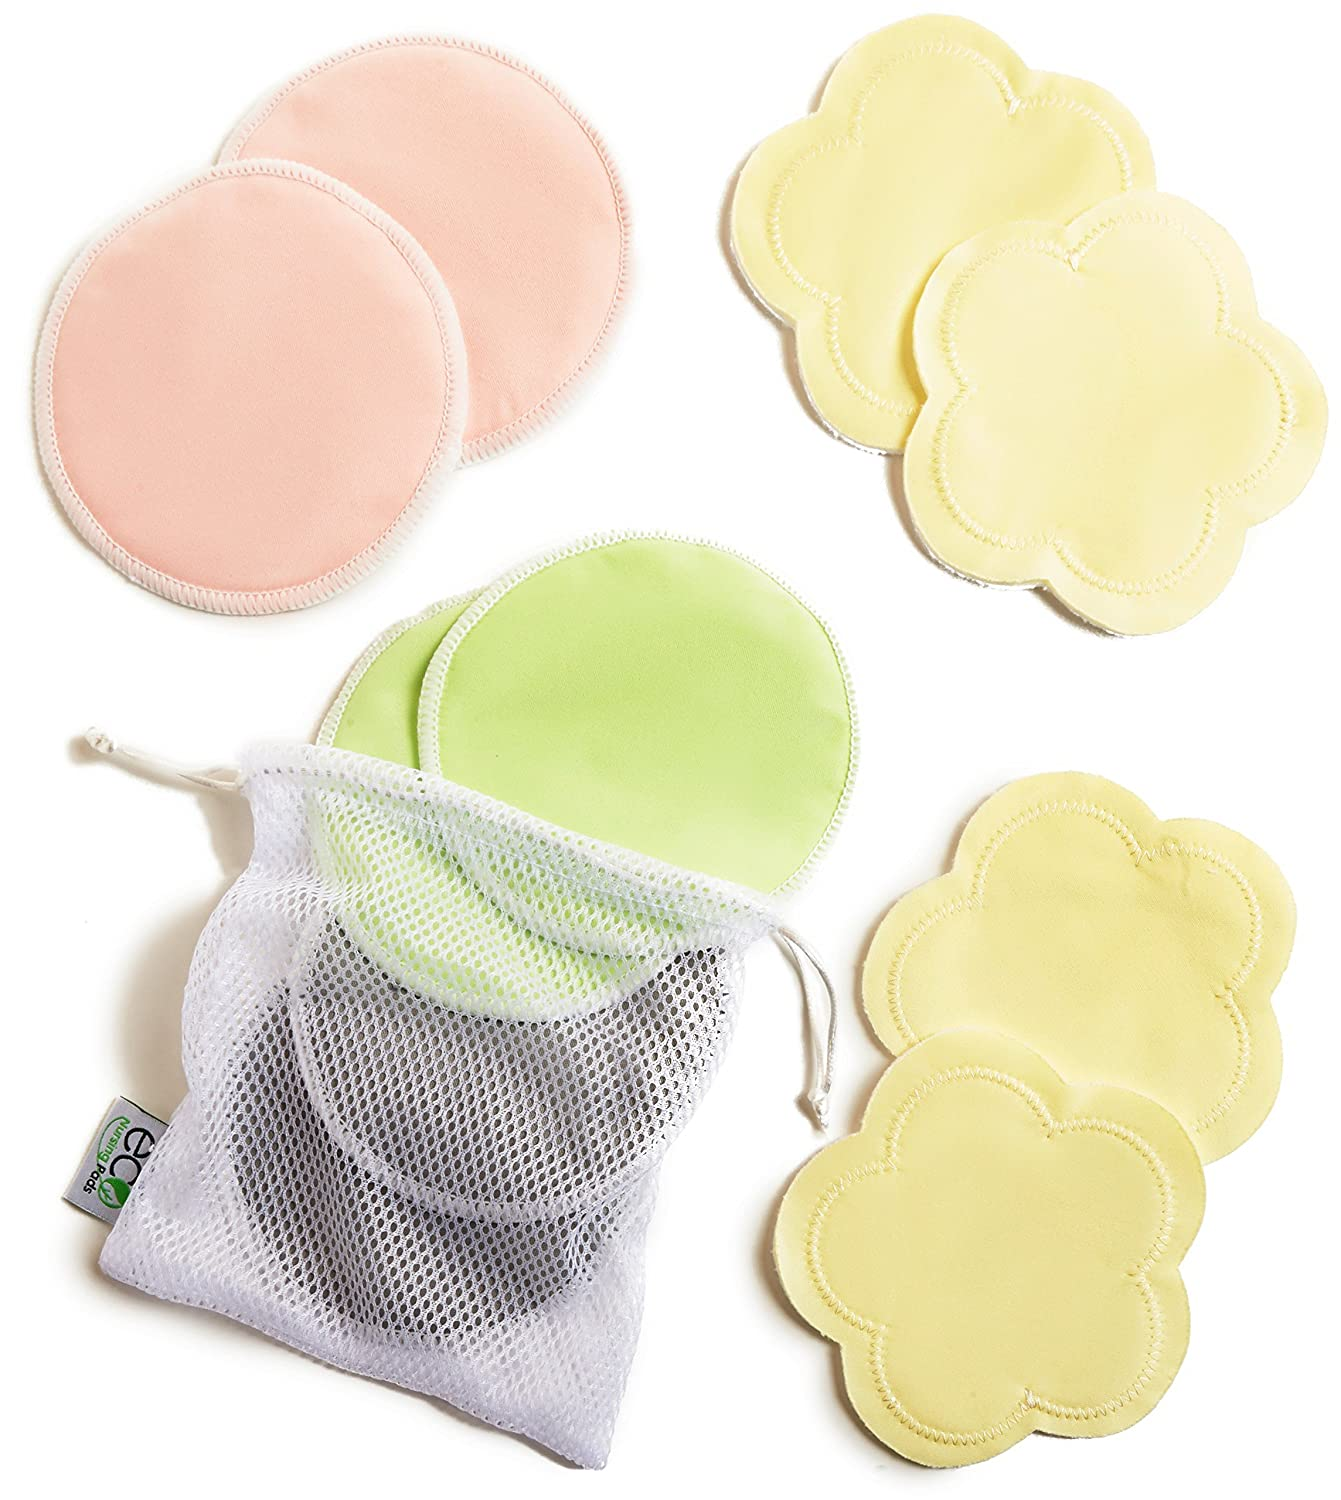 Contoured Washable Reusable Bamboo Nursing Pads Ultra-Soft Velvet Flower Pads 10 Pack with 2 BONUS Pouches /& E-Book Organic Bamboo Breastfeeding Pads Baby Shower Gift